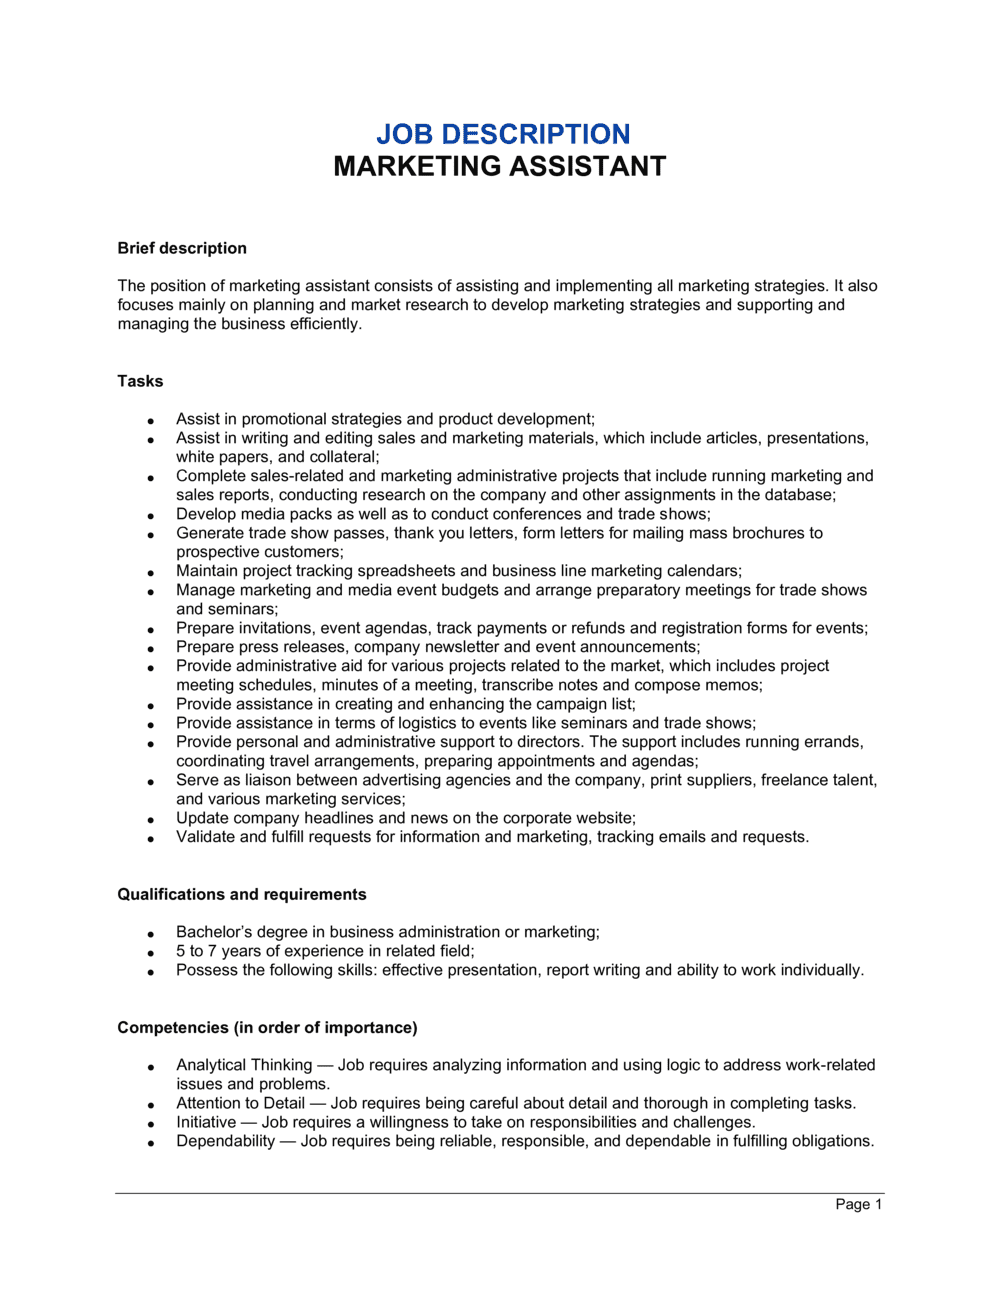 Business-in-a-Box's Marketing Assistant Job Description Template